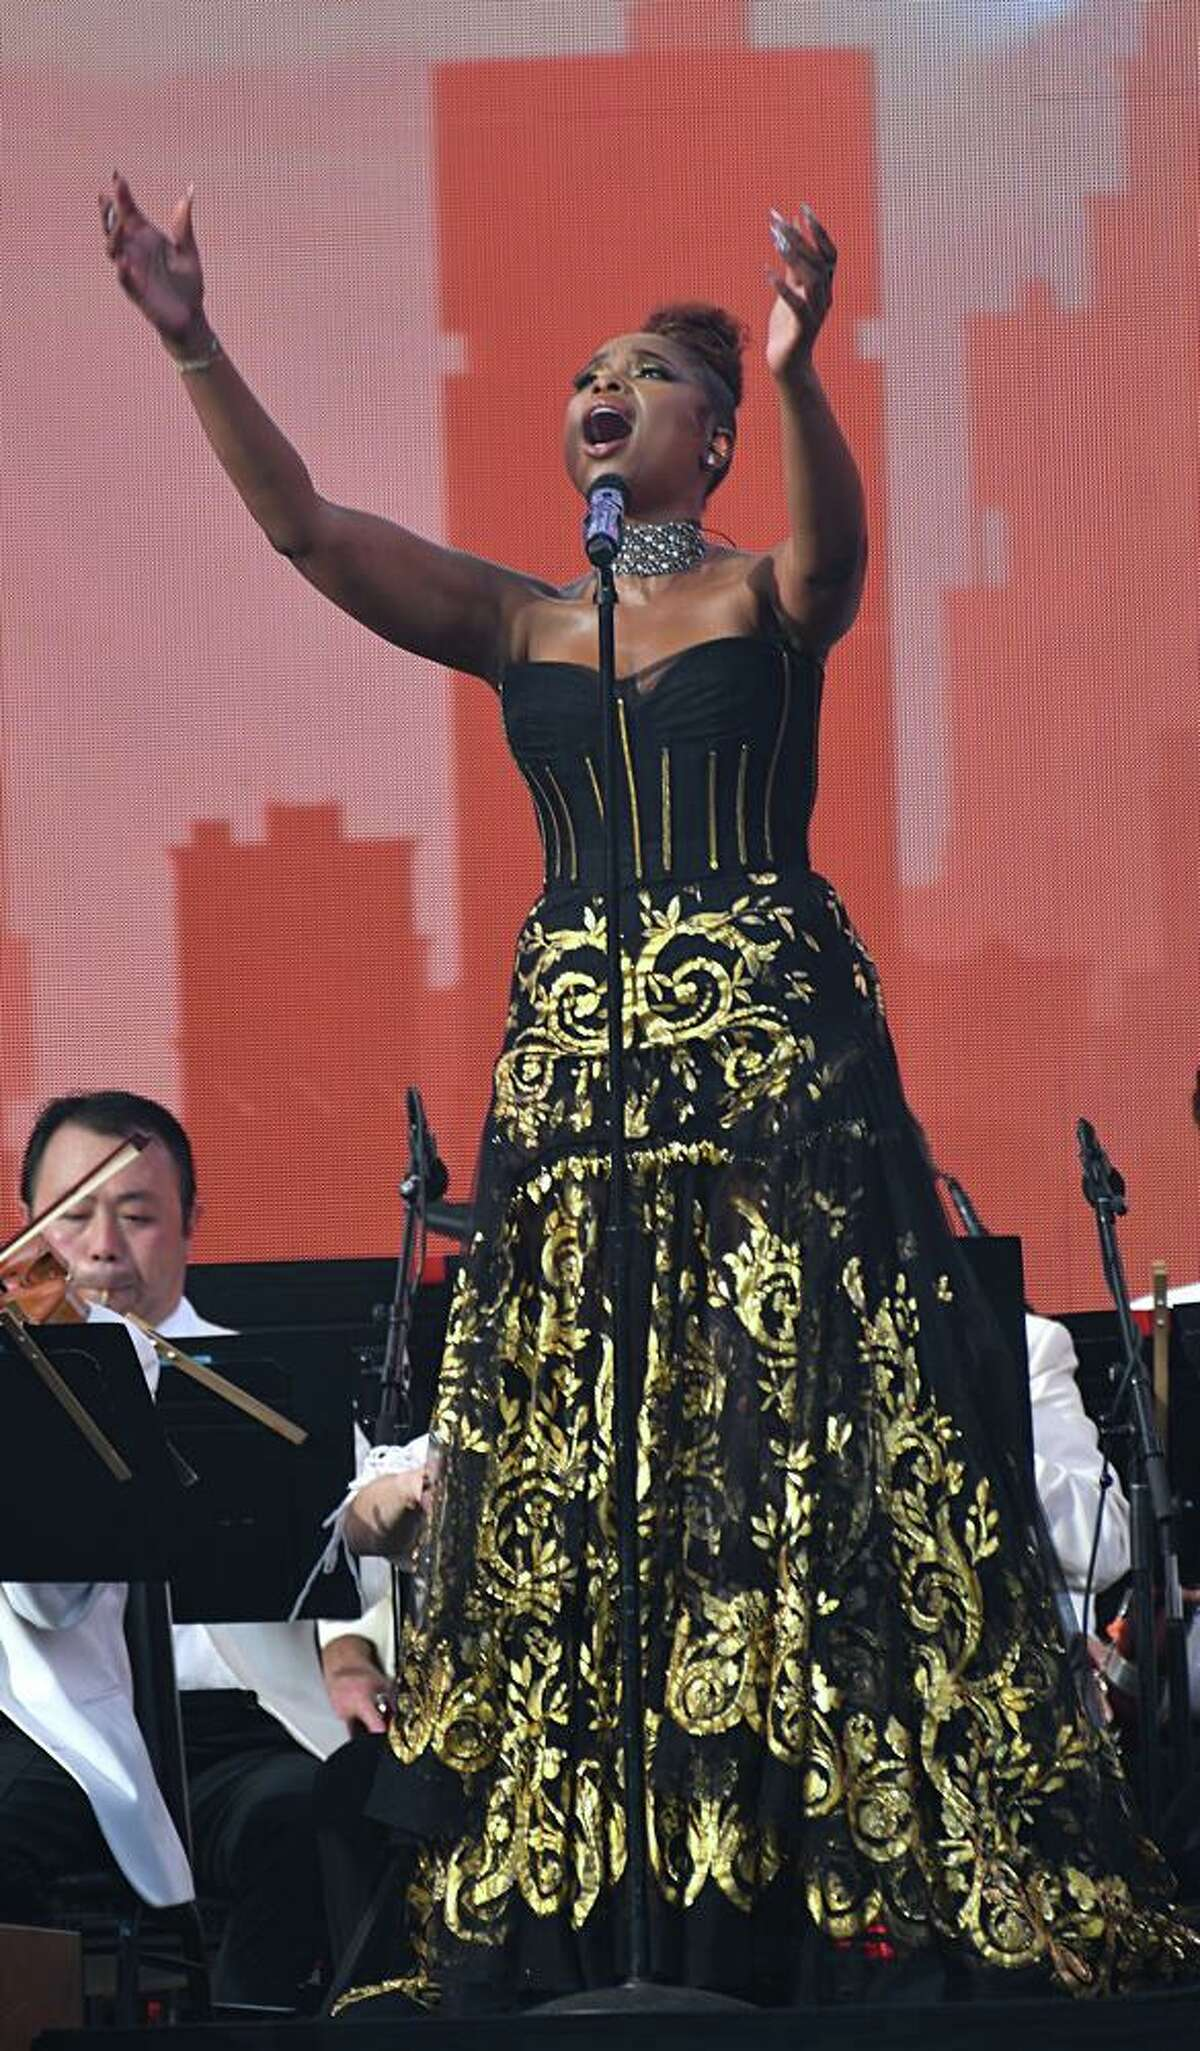 Singer Jennifer Hudson is shown performing with the New York Philharmonic Symphony Orchestra at We Love NYC - The Homecoming Concert on August 21, 2021.